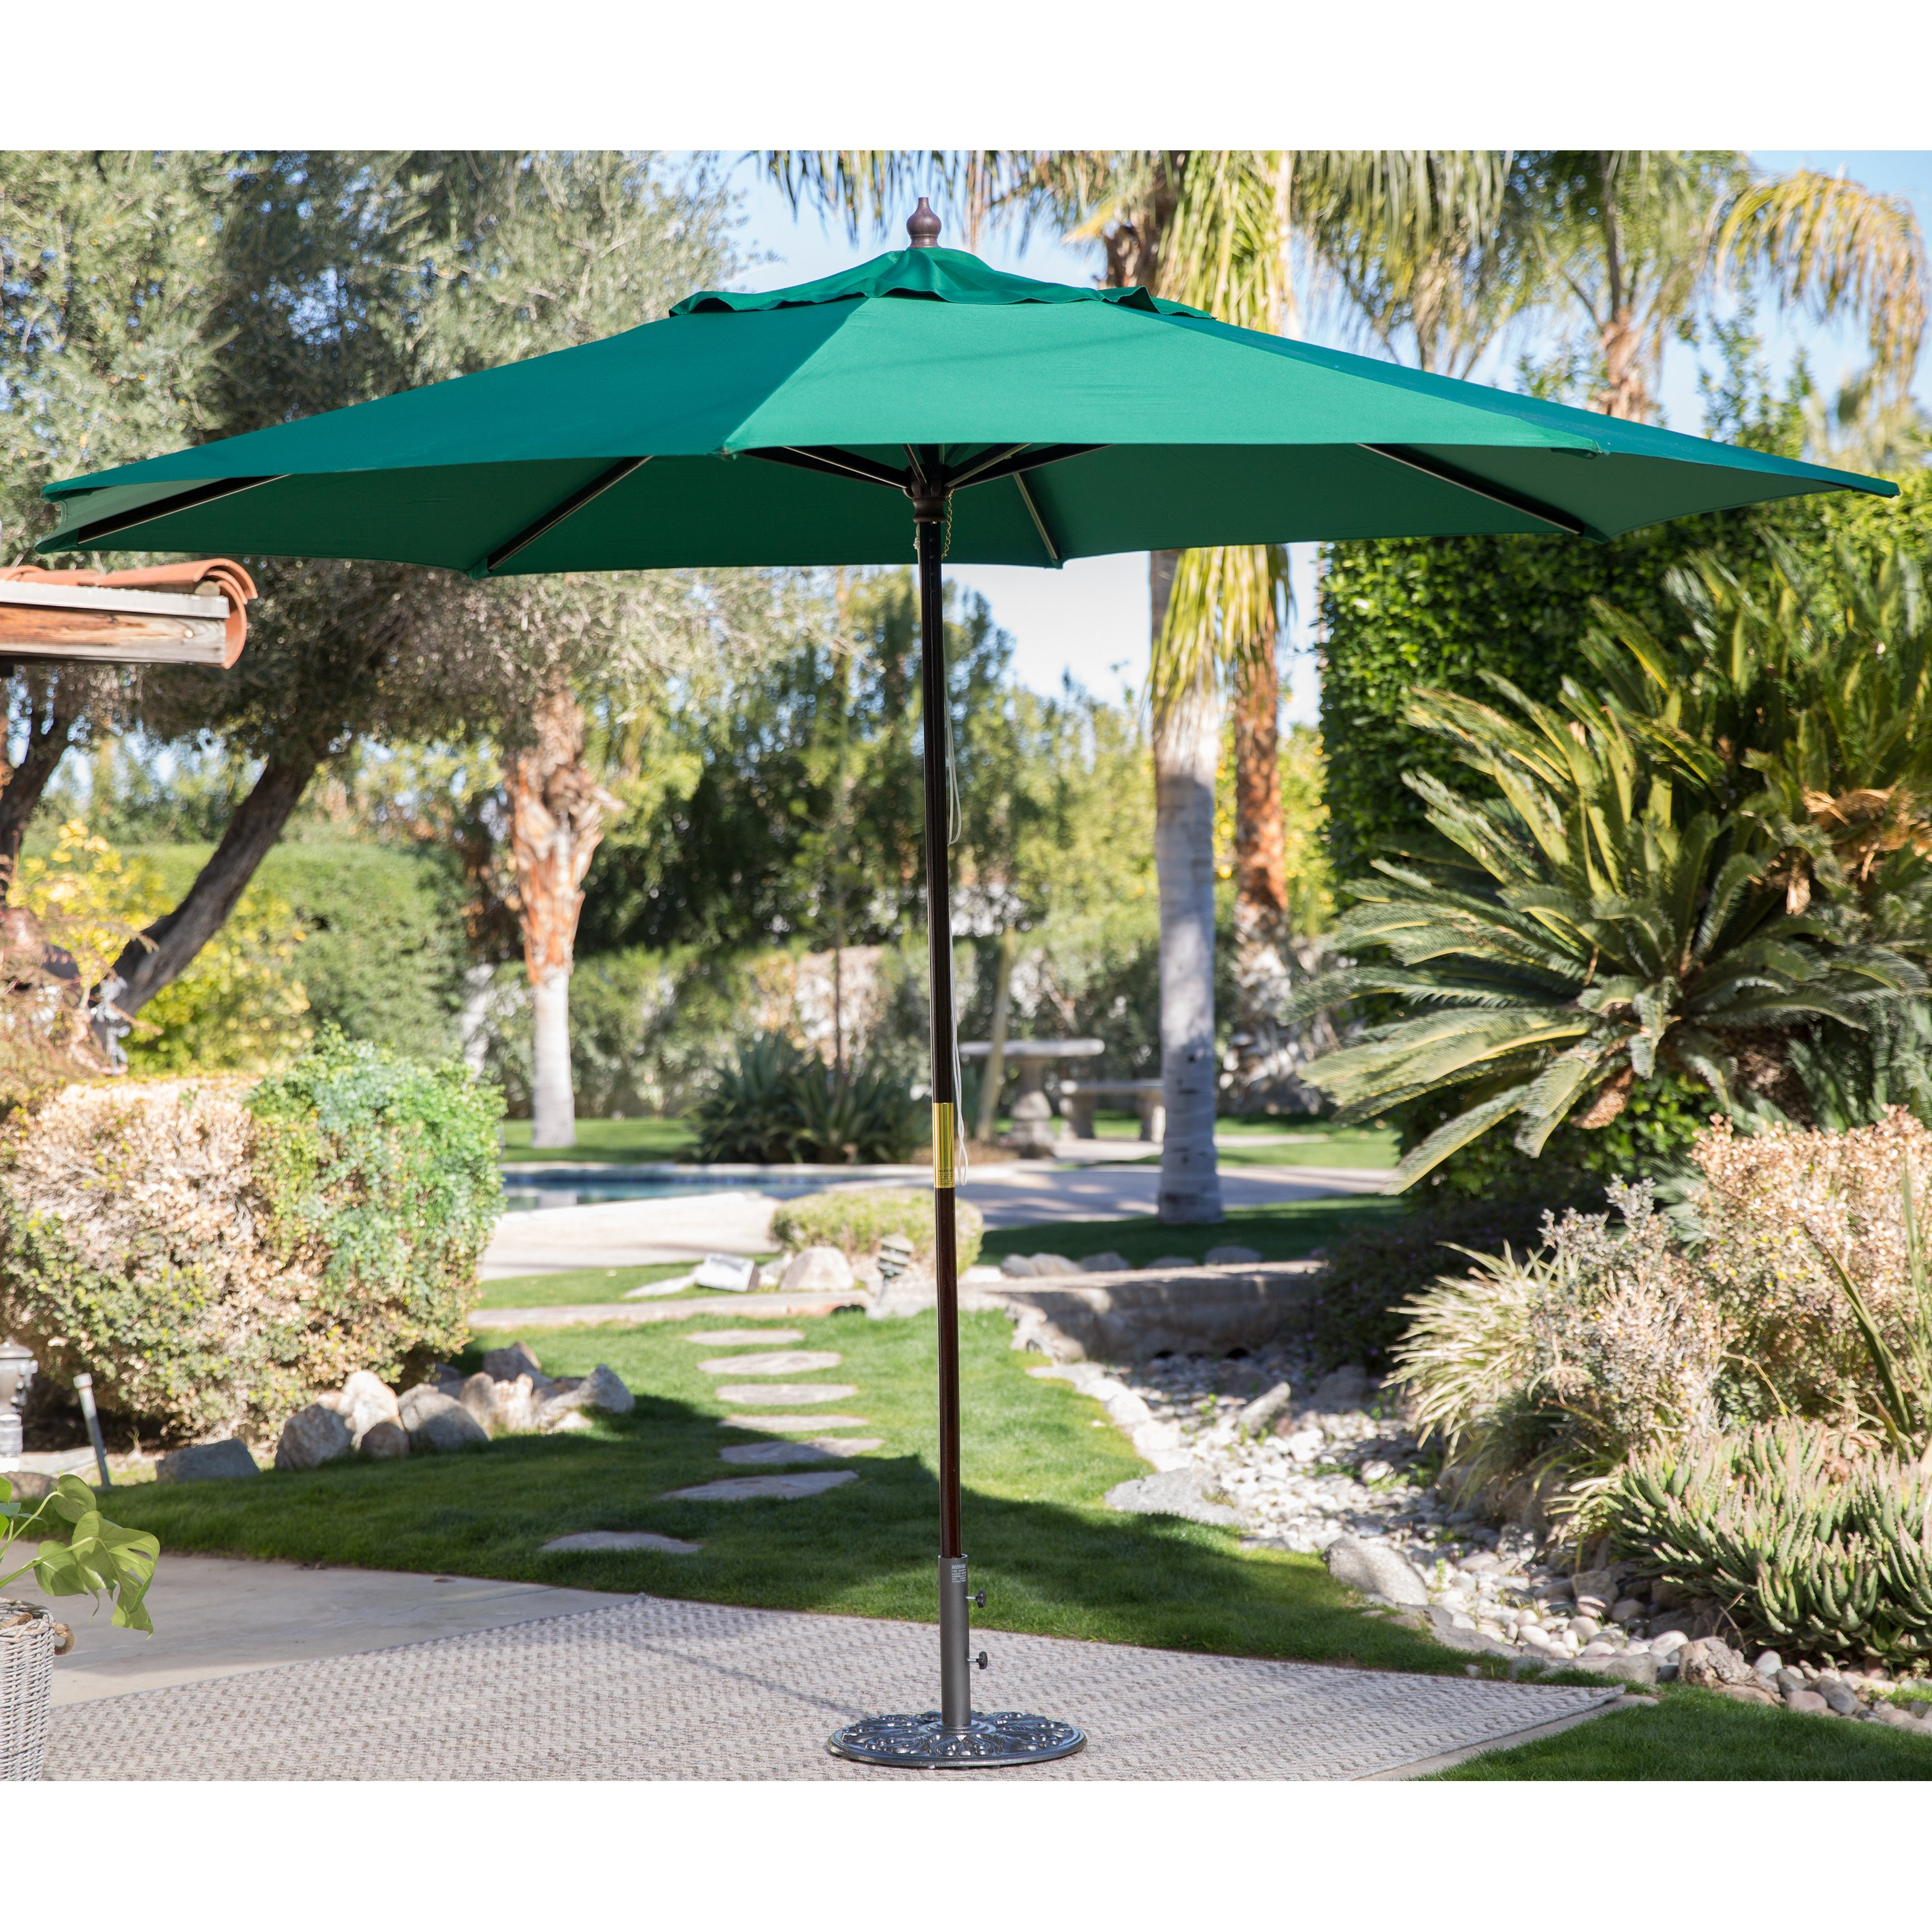 that ideas offset on patio pinterest umbrellas awesome umbrella of the photos fun fantastic lowes best picture